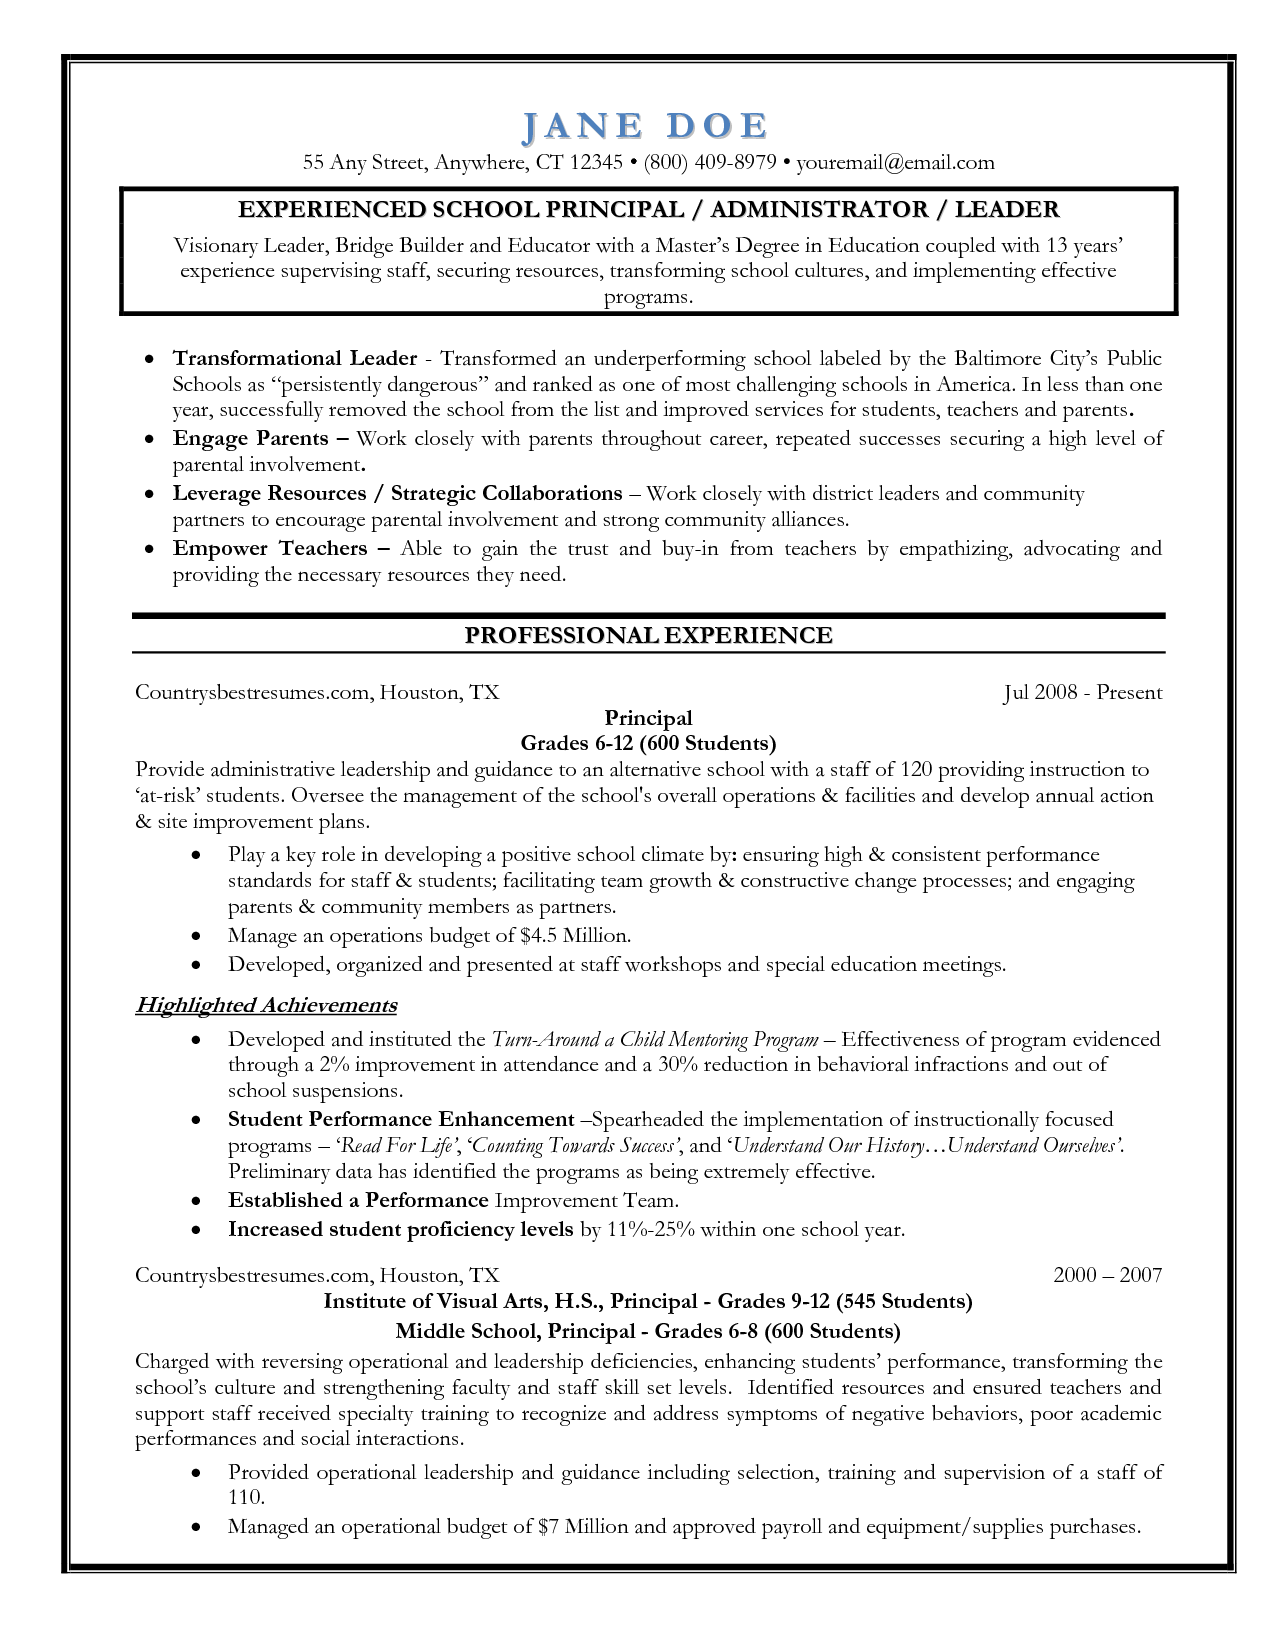 Administrator Resume Sample Amazing Entrylevel Assistant Principal Resume Templates  Senior Educator .